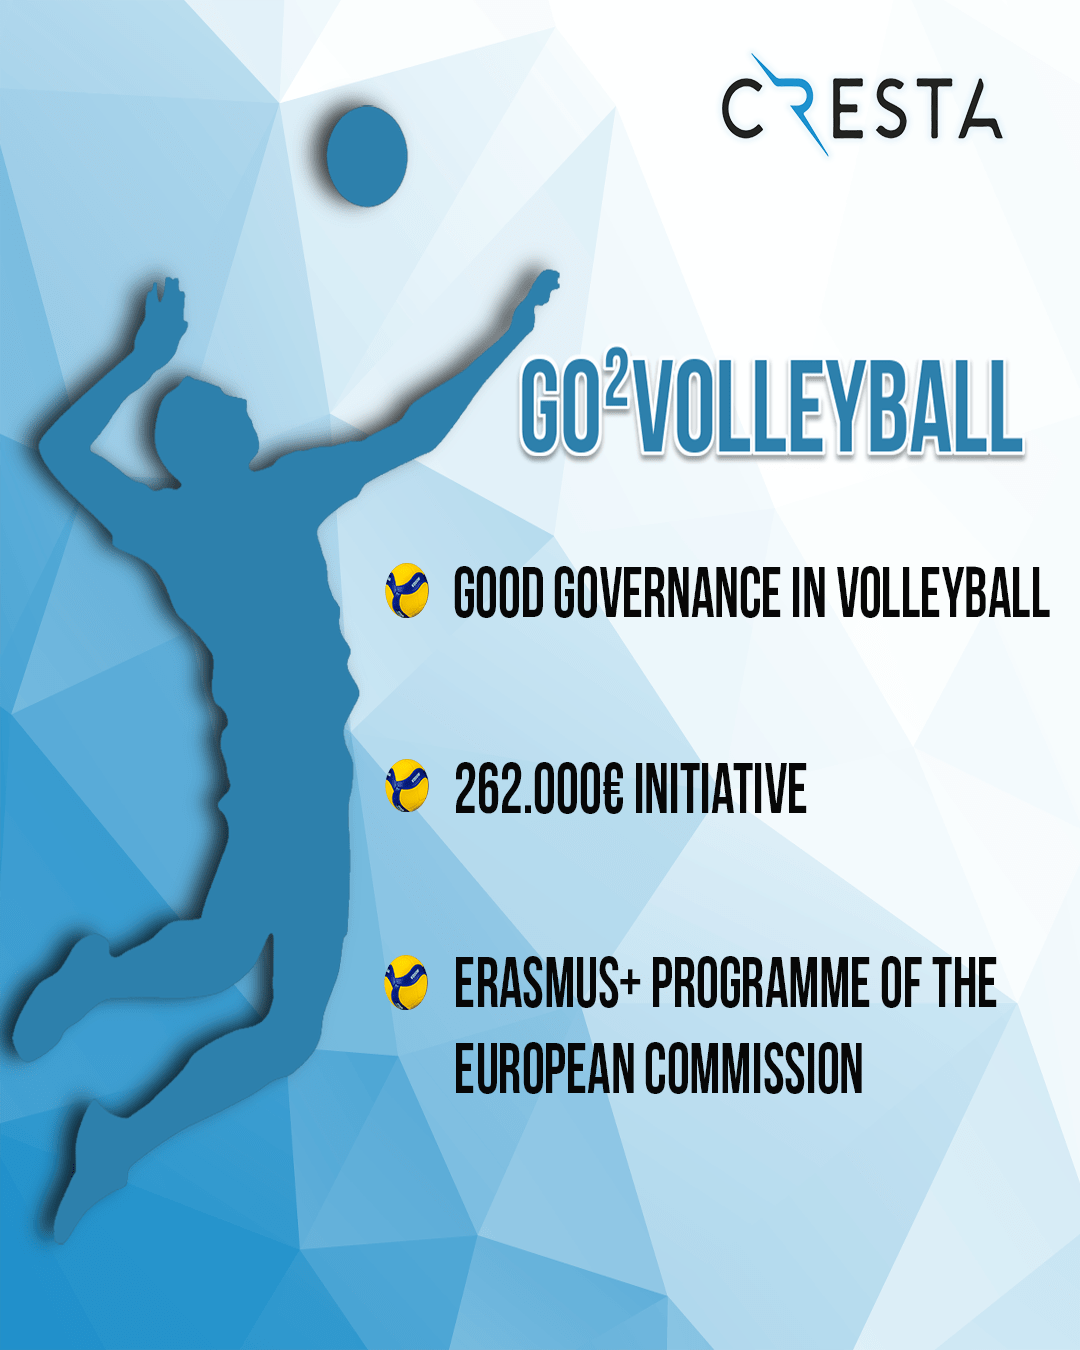 CRESTA contributing to good governance in volleyball via the 'Go²Volleyball' project